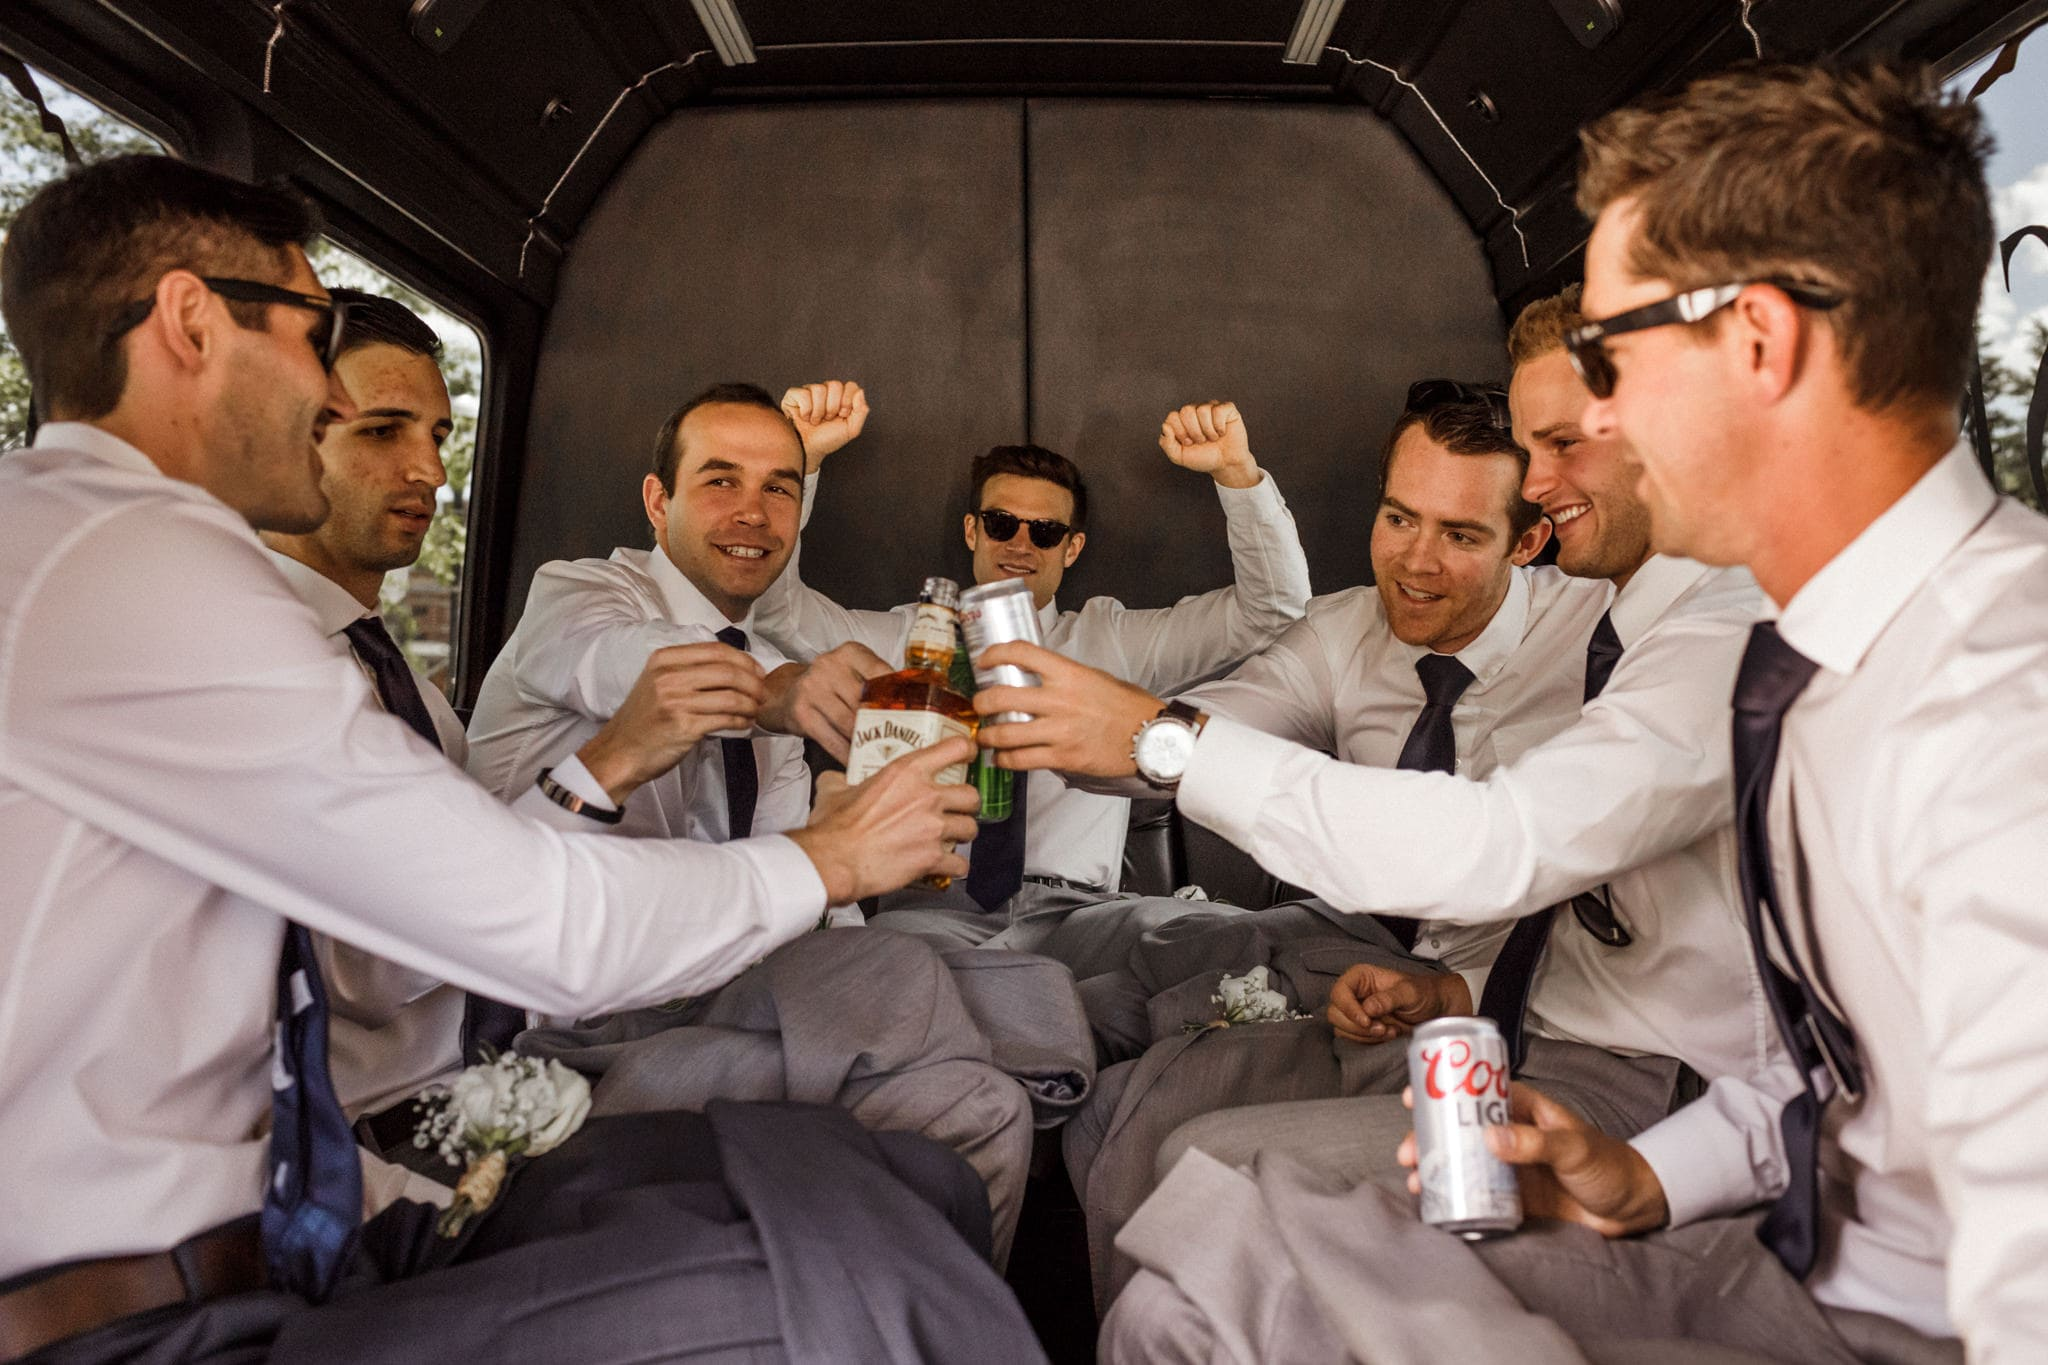 Groom and groomsmen drinking in shuttle on the way to a Main Street Station wedding in Breckenridge